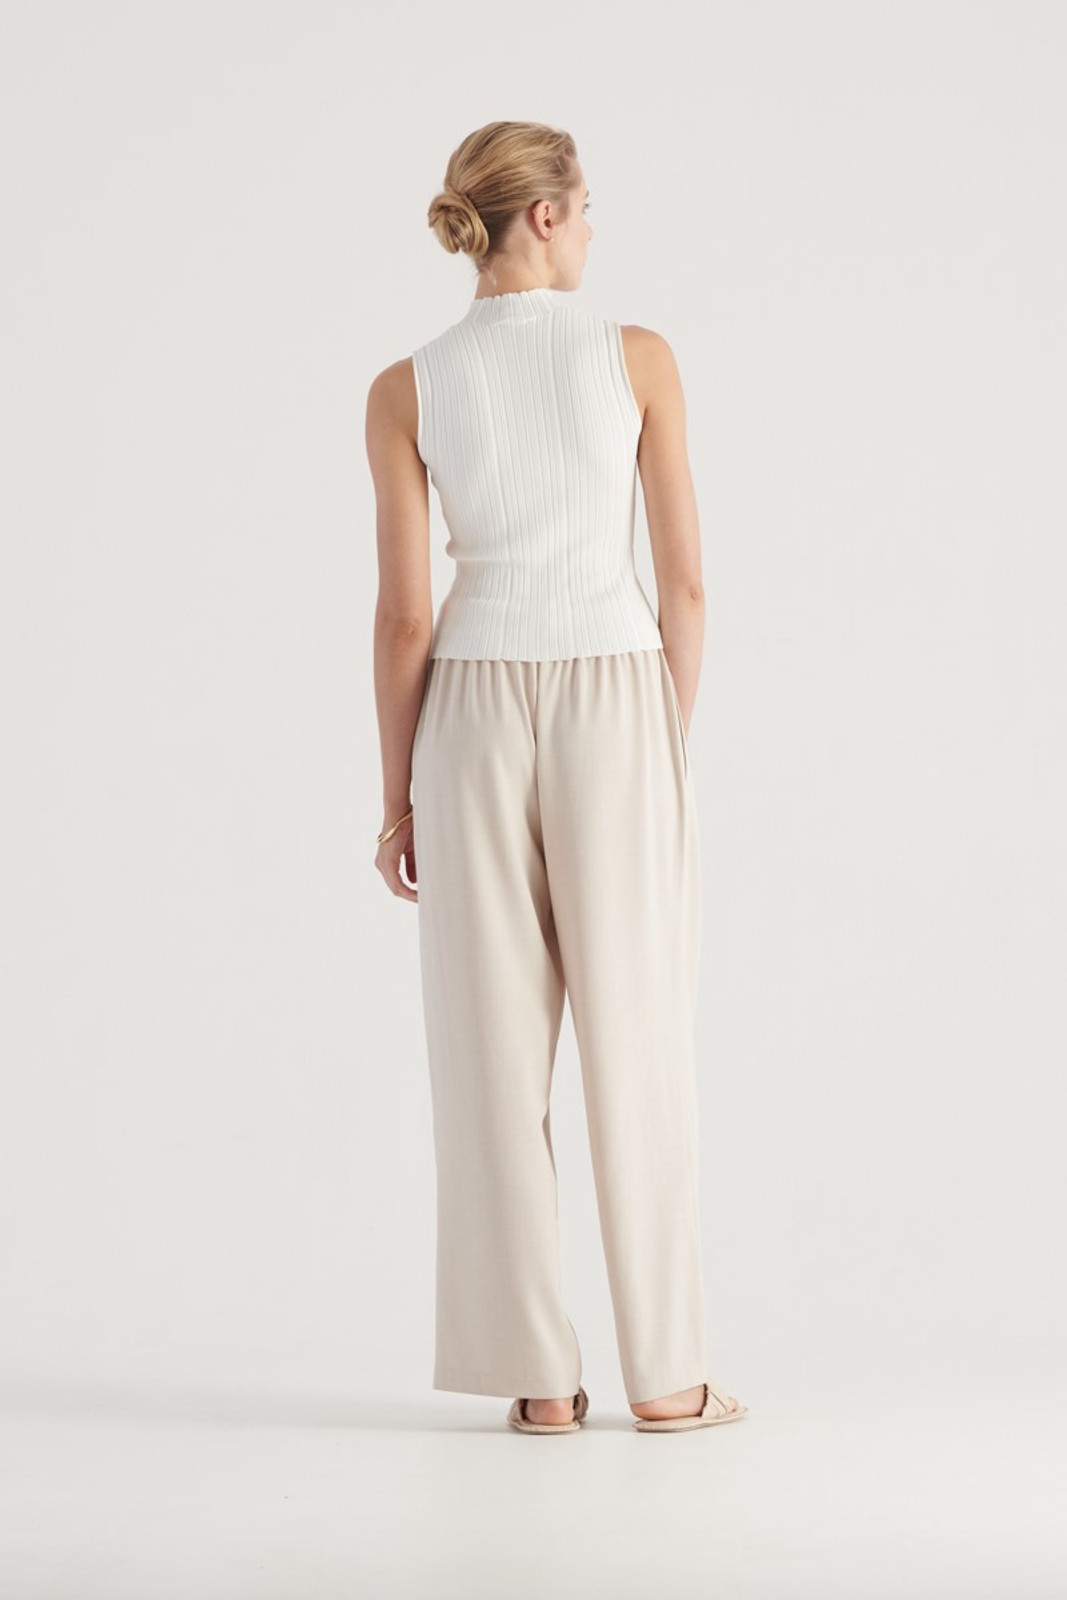 Elka Collective WOMENS White Pillar Knit Top 4